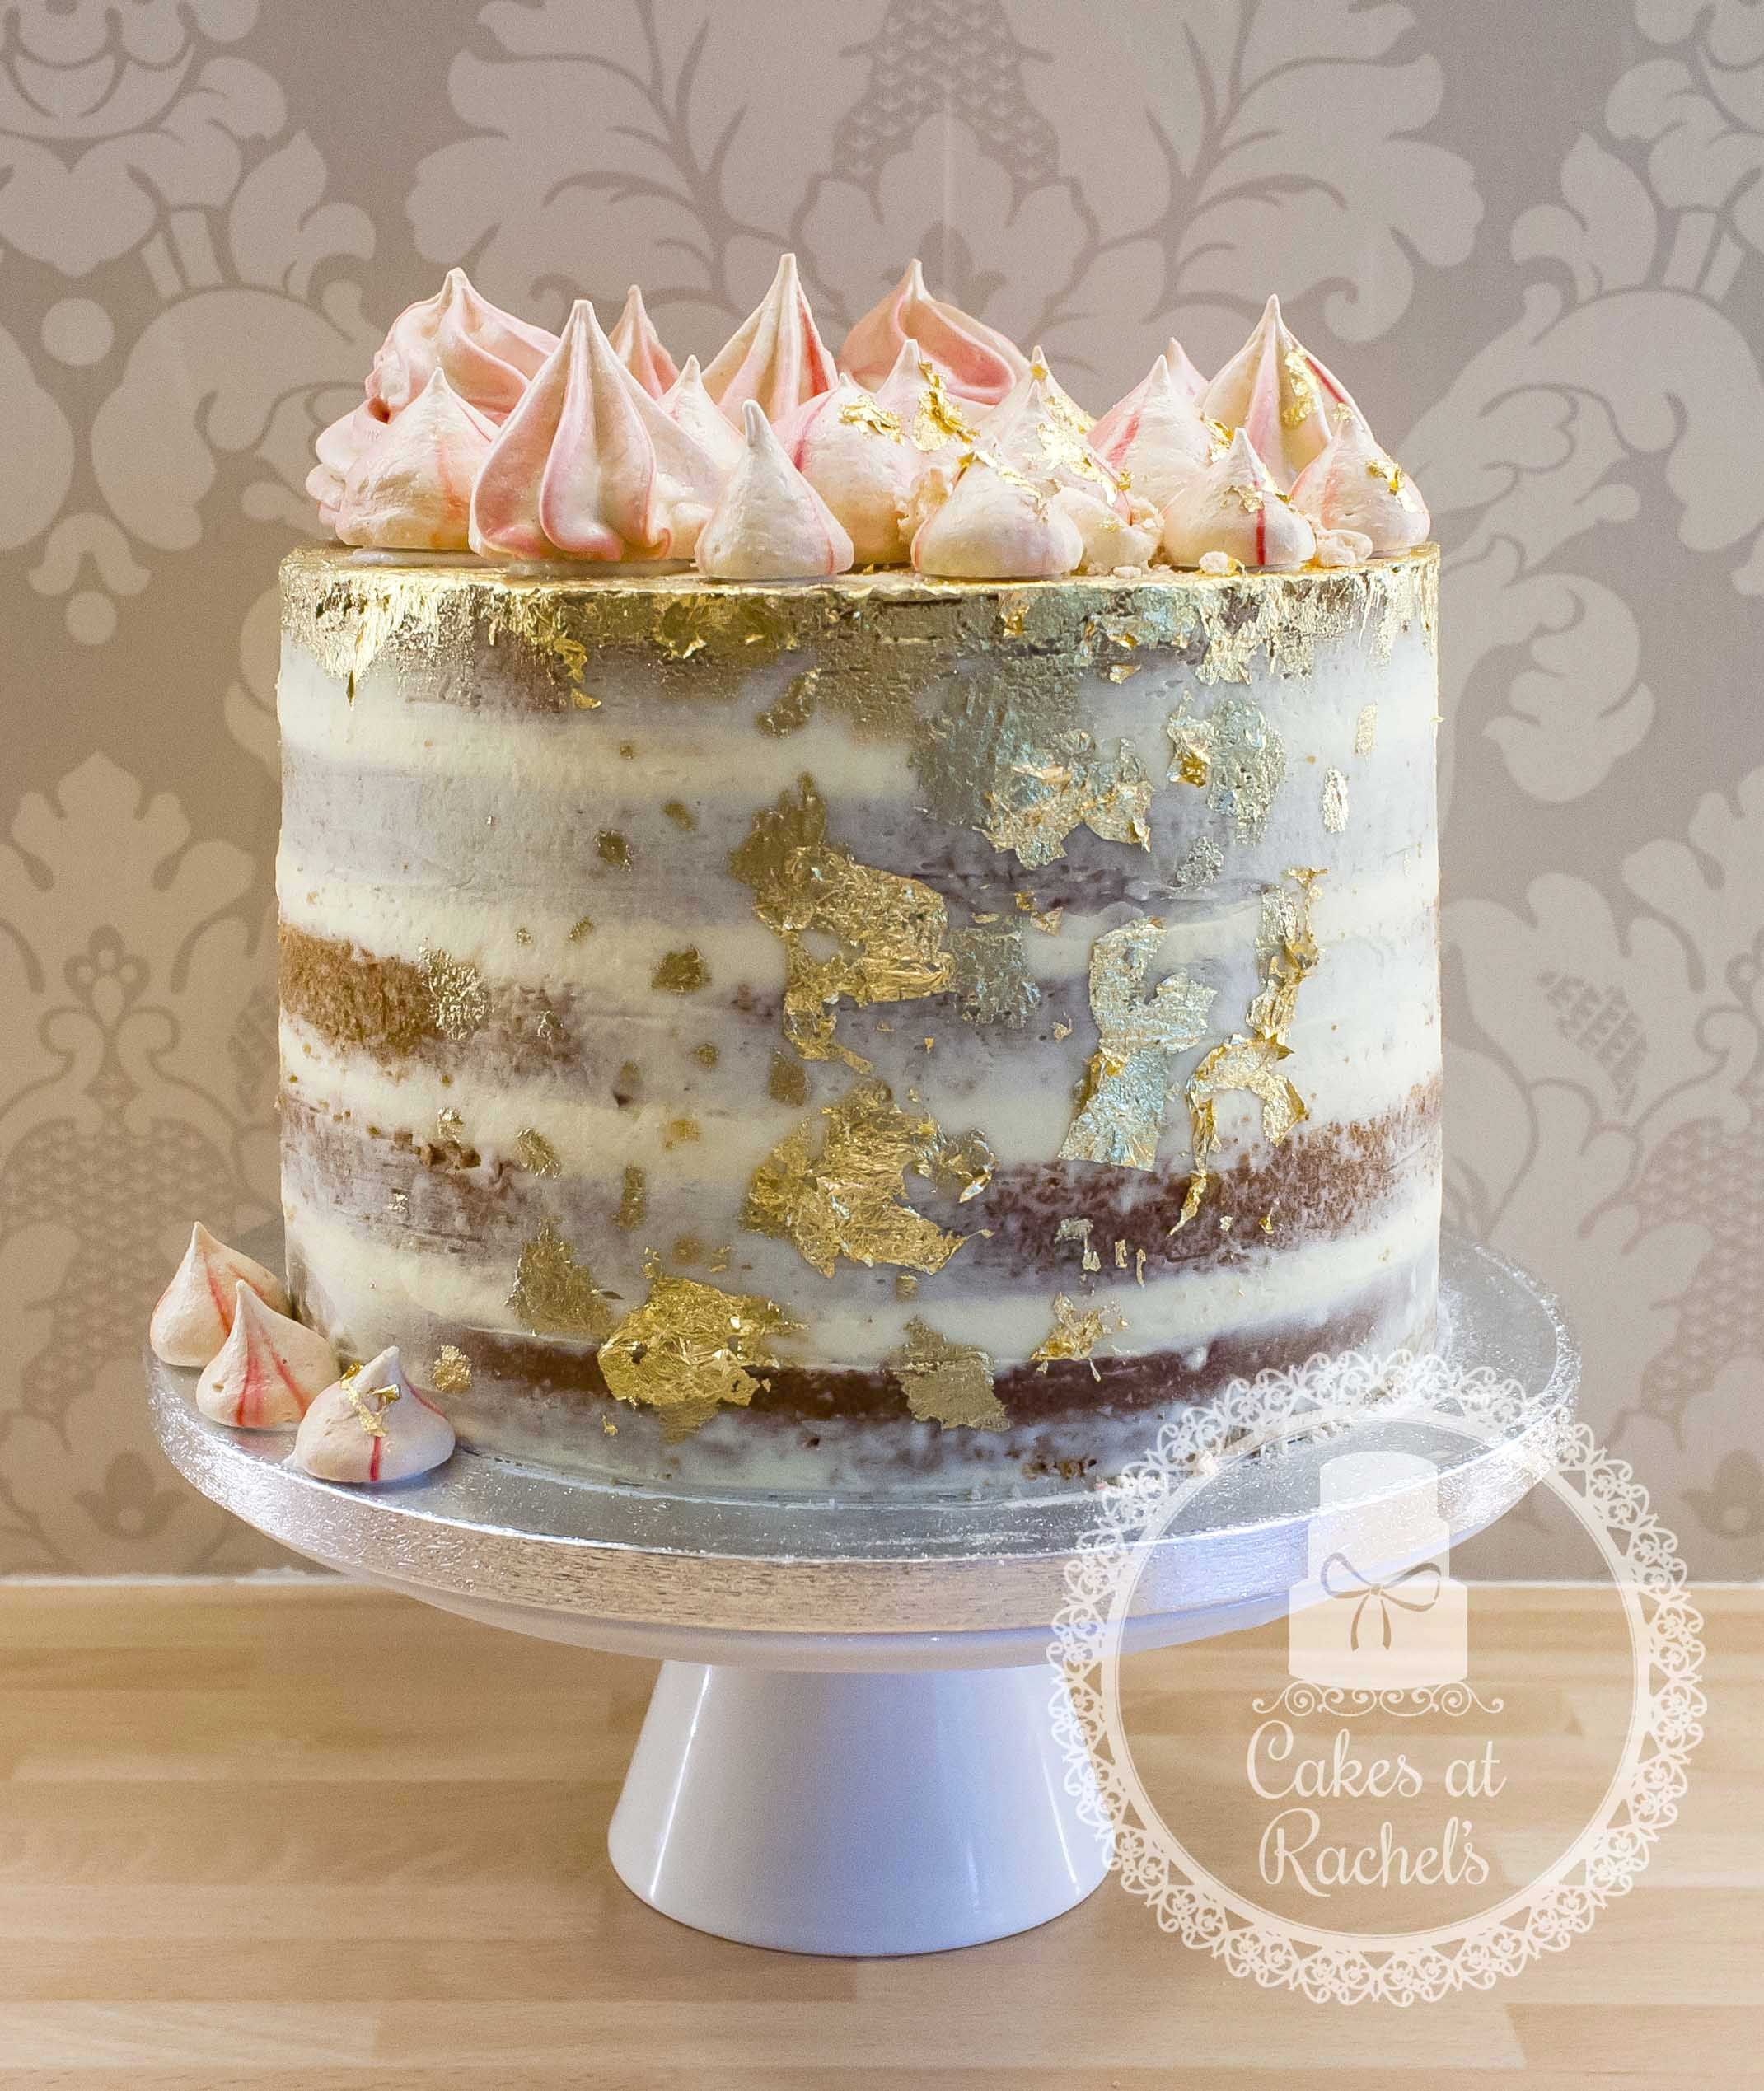 Semi naked cake - Edible gold leaf - homemade meringues - celebration - birthday - Blackpool - Cakes at Rachel's - see more at www.facebook.com/Cakes.at.Rachels